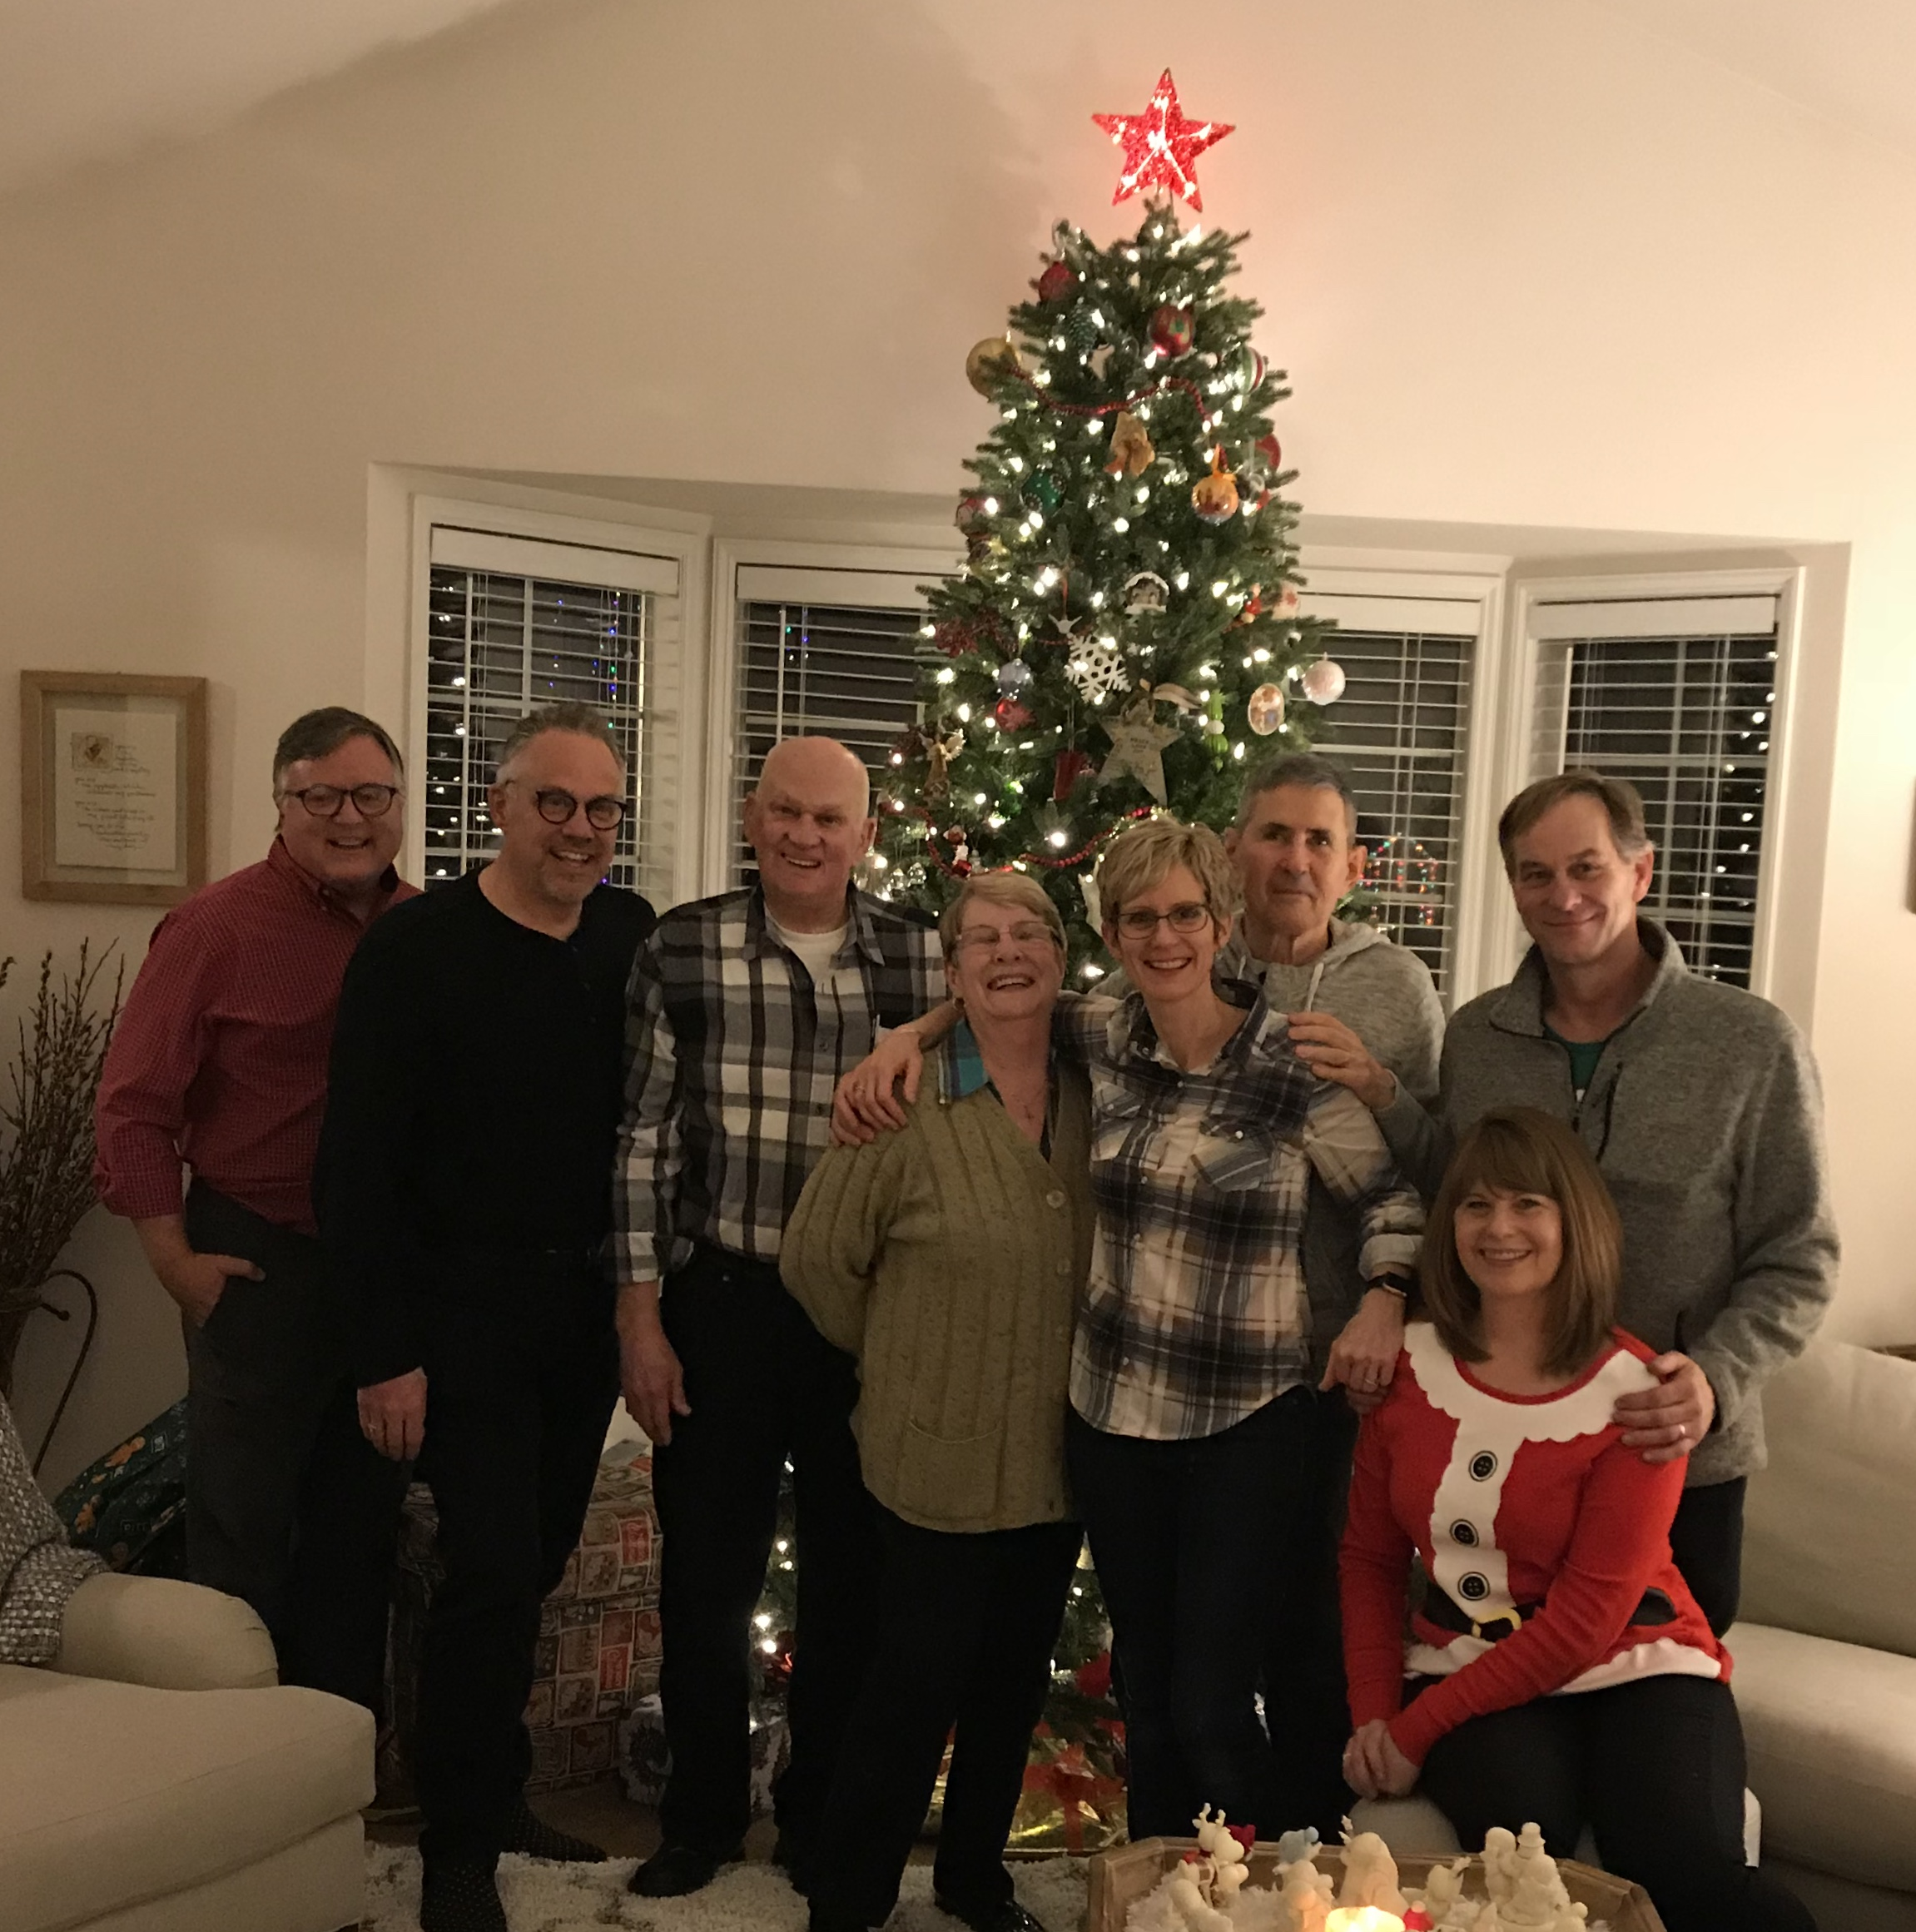 Peter, Terry, Dad, Mom, Tammy, Ray,Gary, and Venita